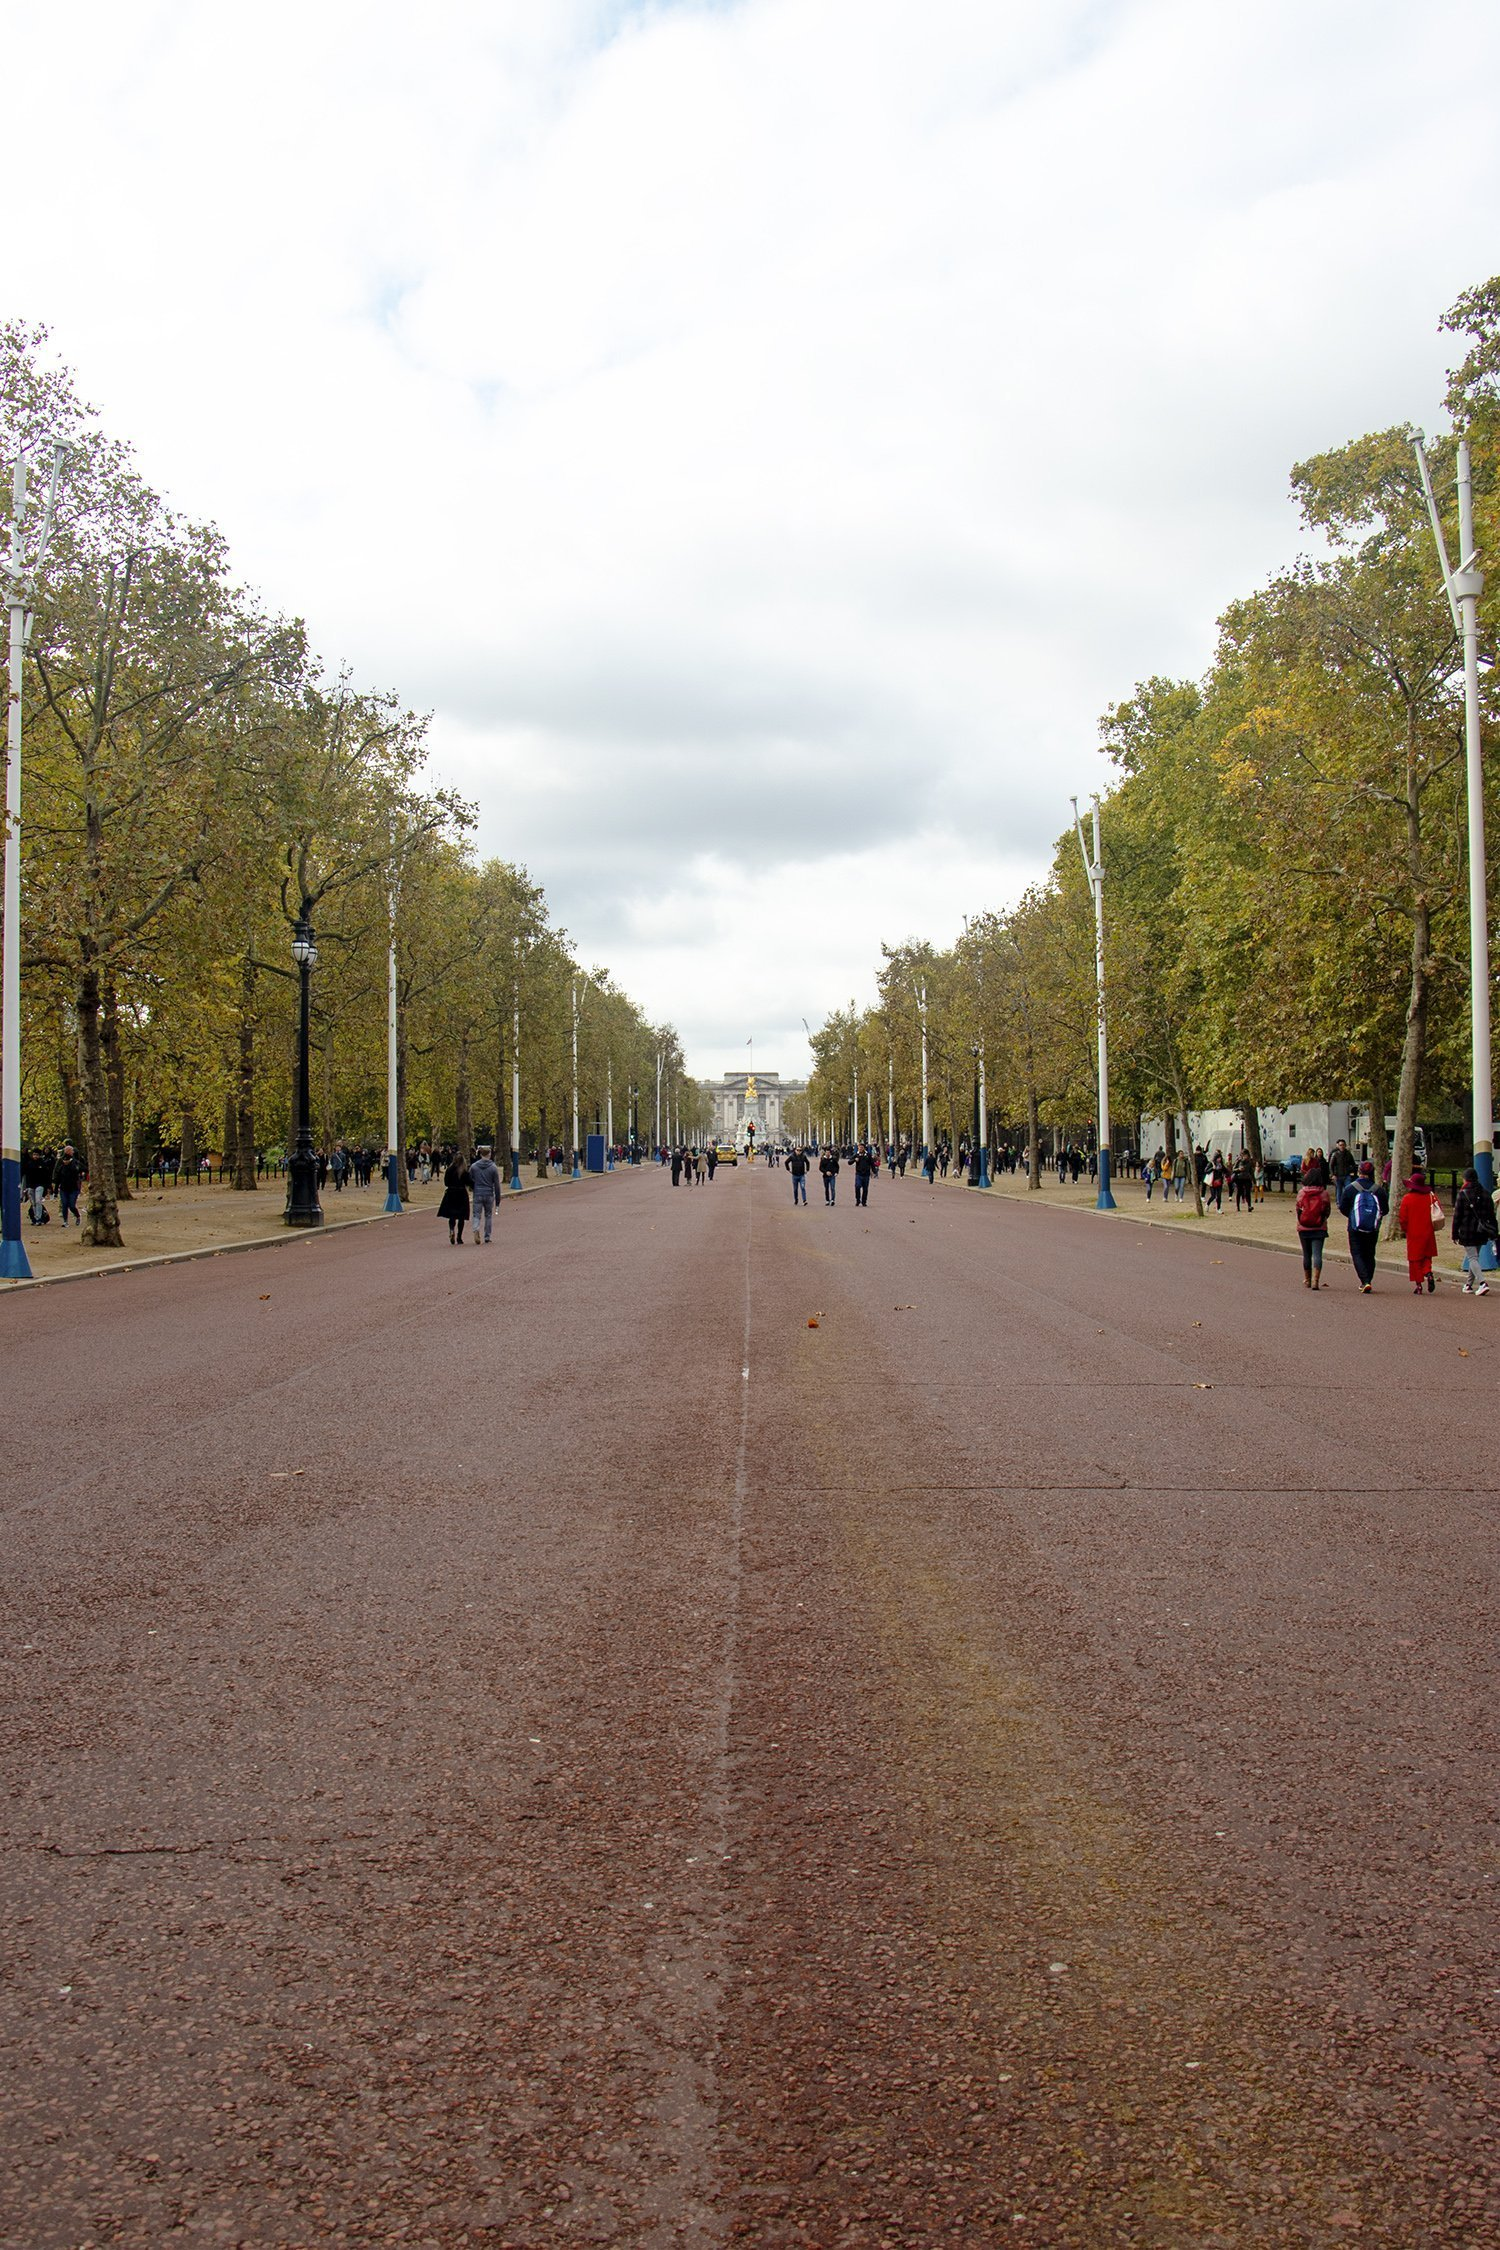 The Mall to Buckingham Palace